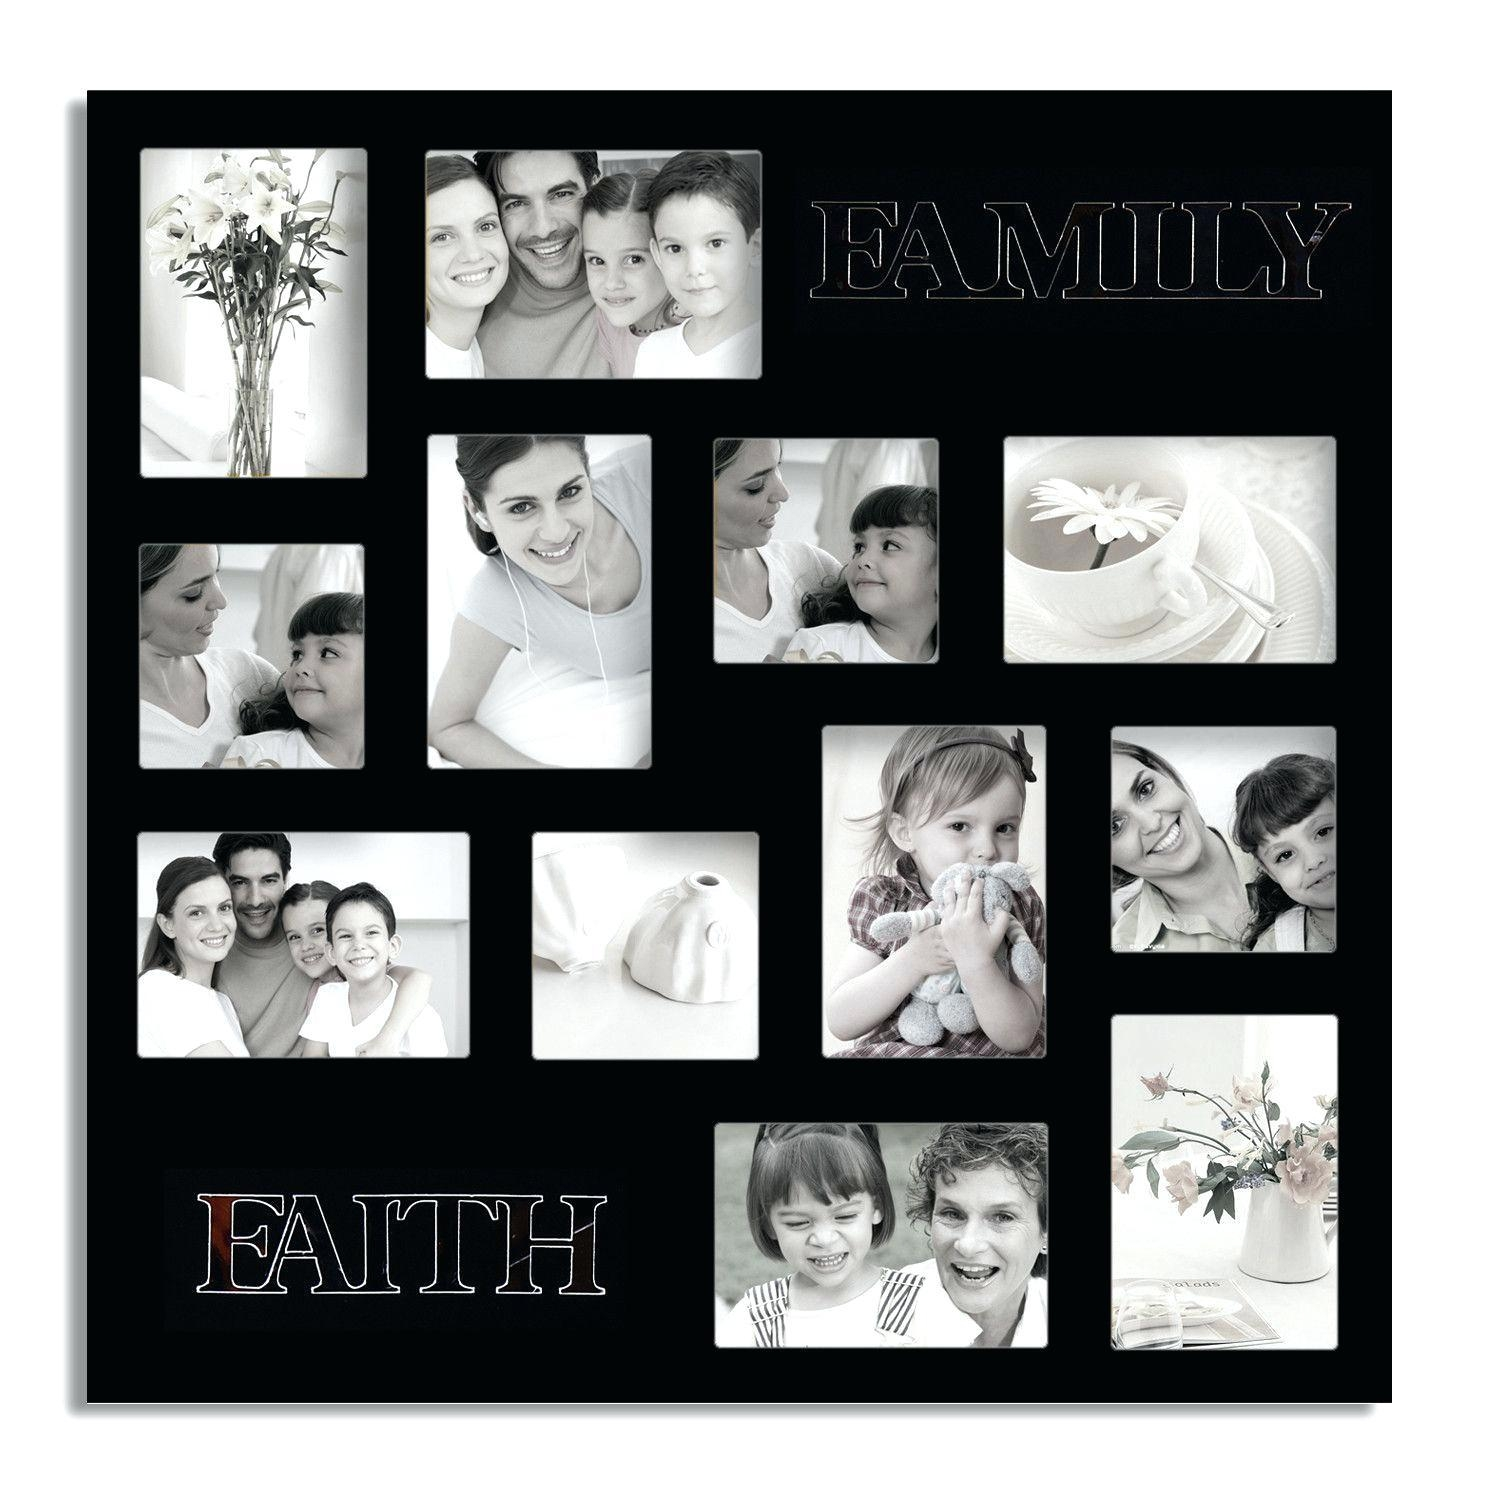 Diy Family Picture Frame Ideas Wall Art Hanging #32073 Interior Intended For Family Wall Art Picture Frames (View 15 of 20)